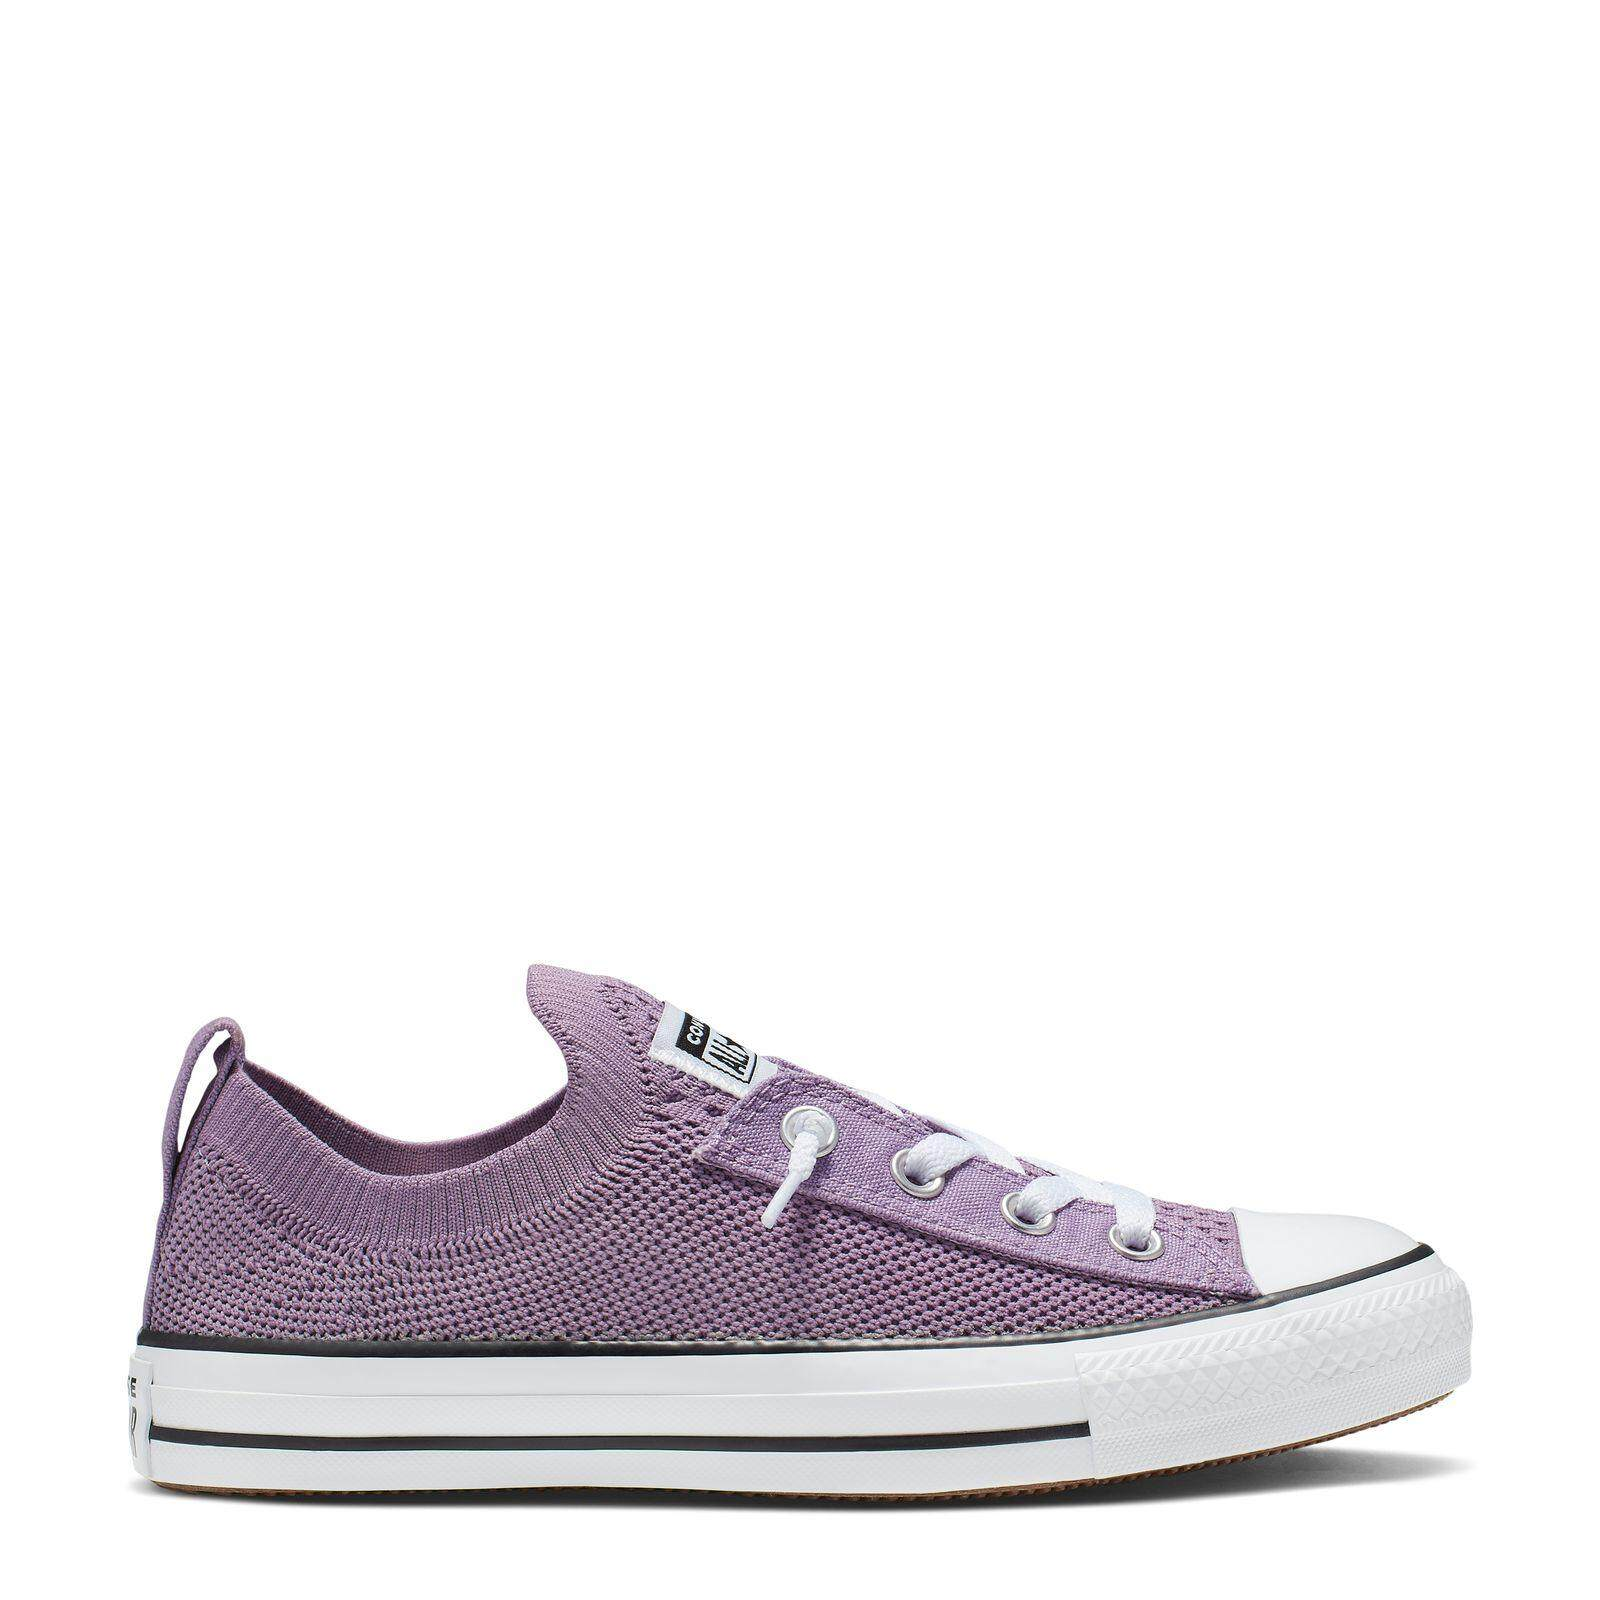 อ่างทอง CONVERSE CHUCK TAYLOR ALL STAR SHORELINE KNIT ALL OF THE STARS - SLIP - DUSTY LILAC/WHITE/BLACK - WOMEN - 565233C - 565233CF9LL